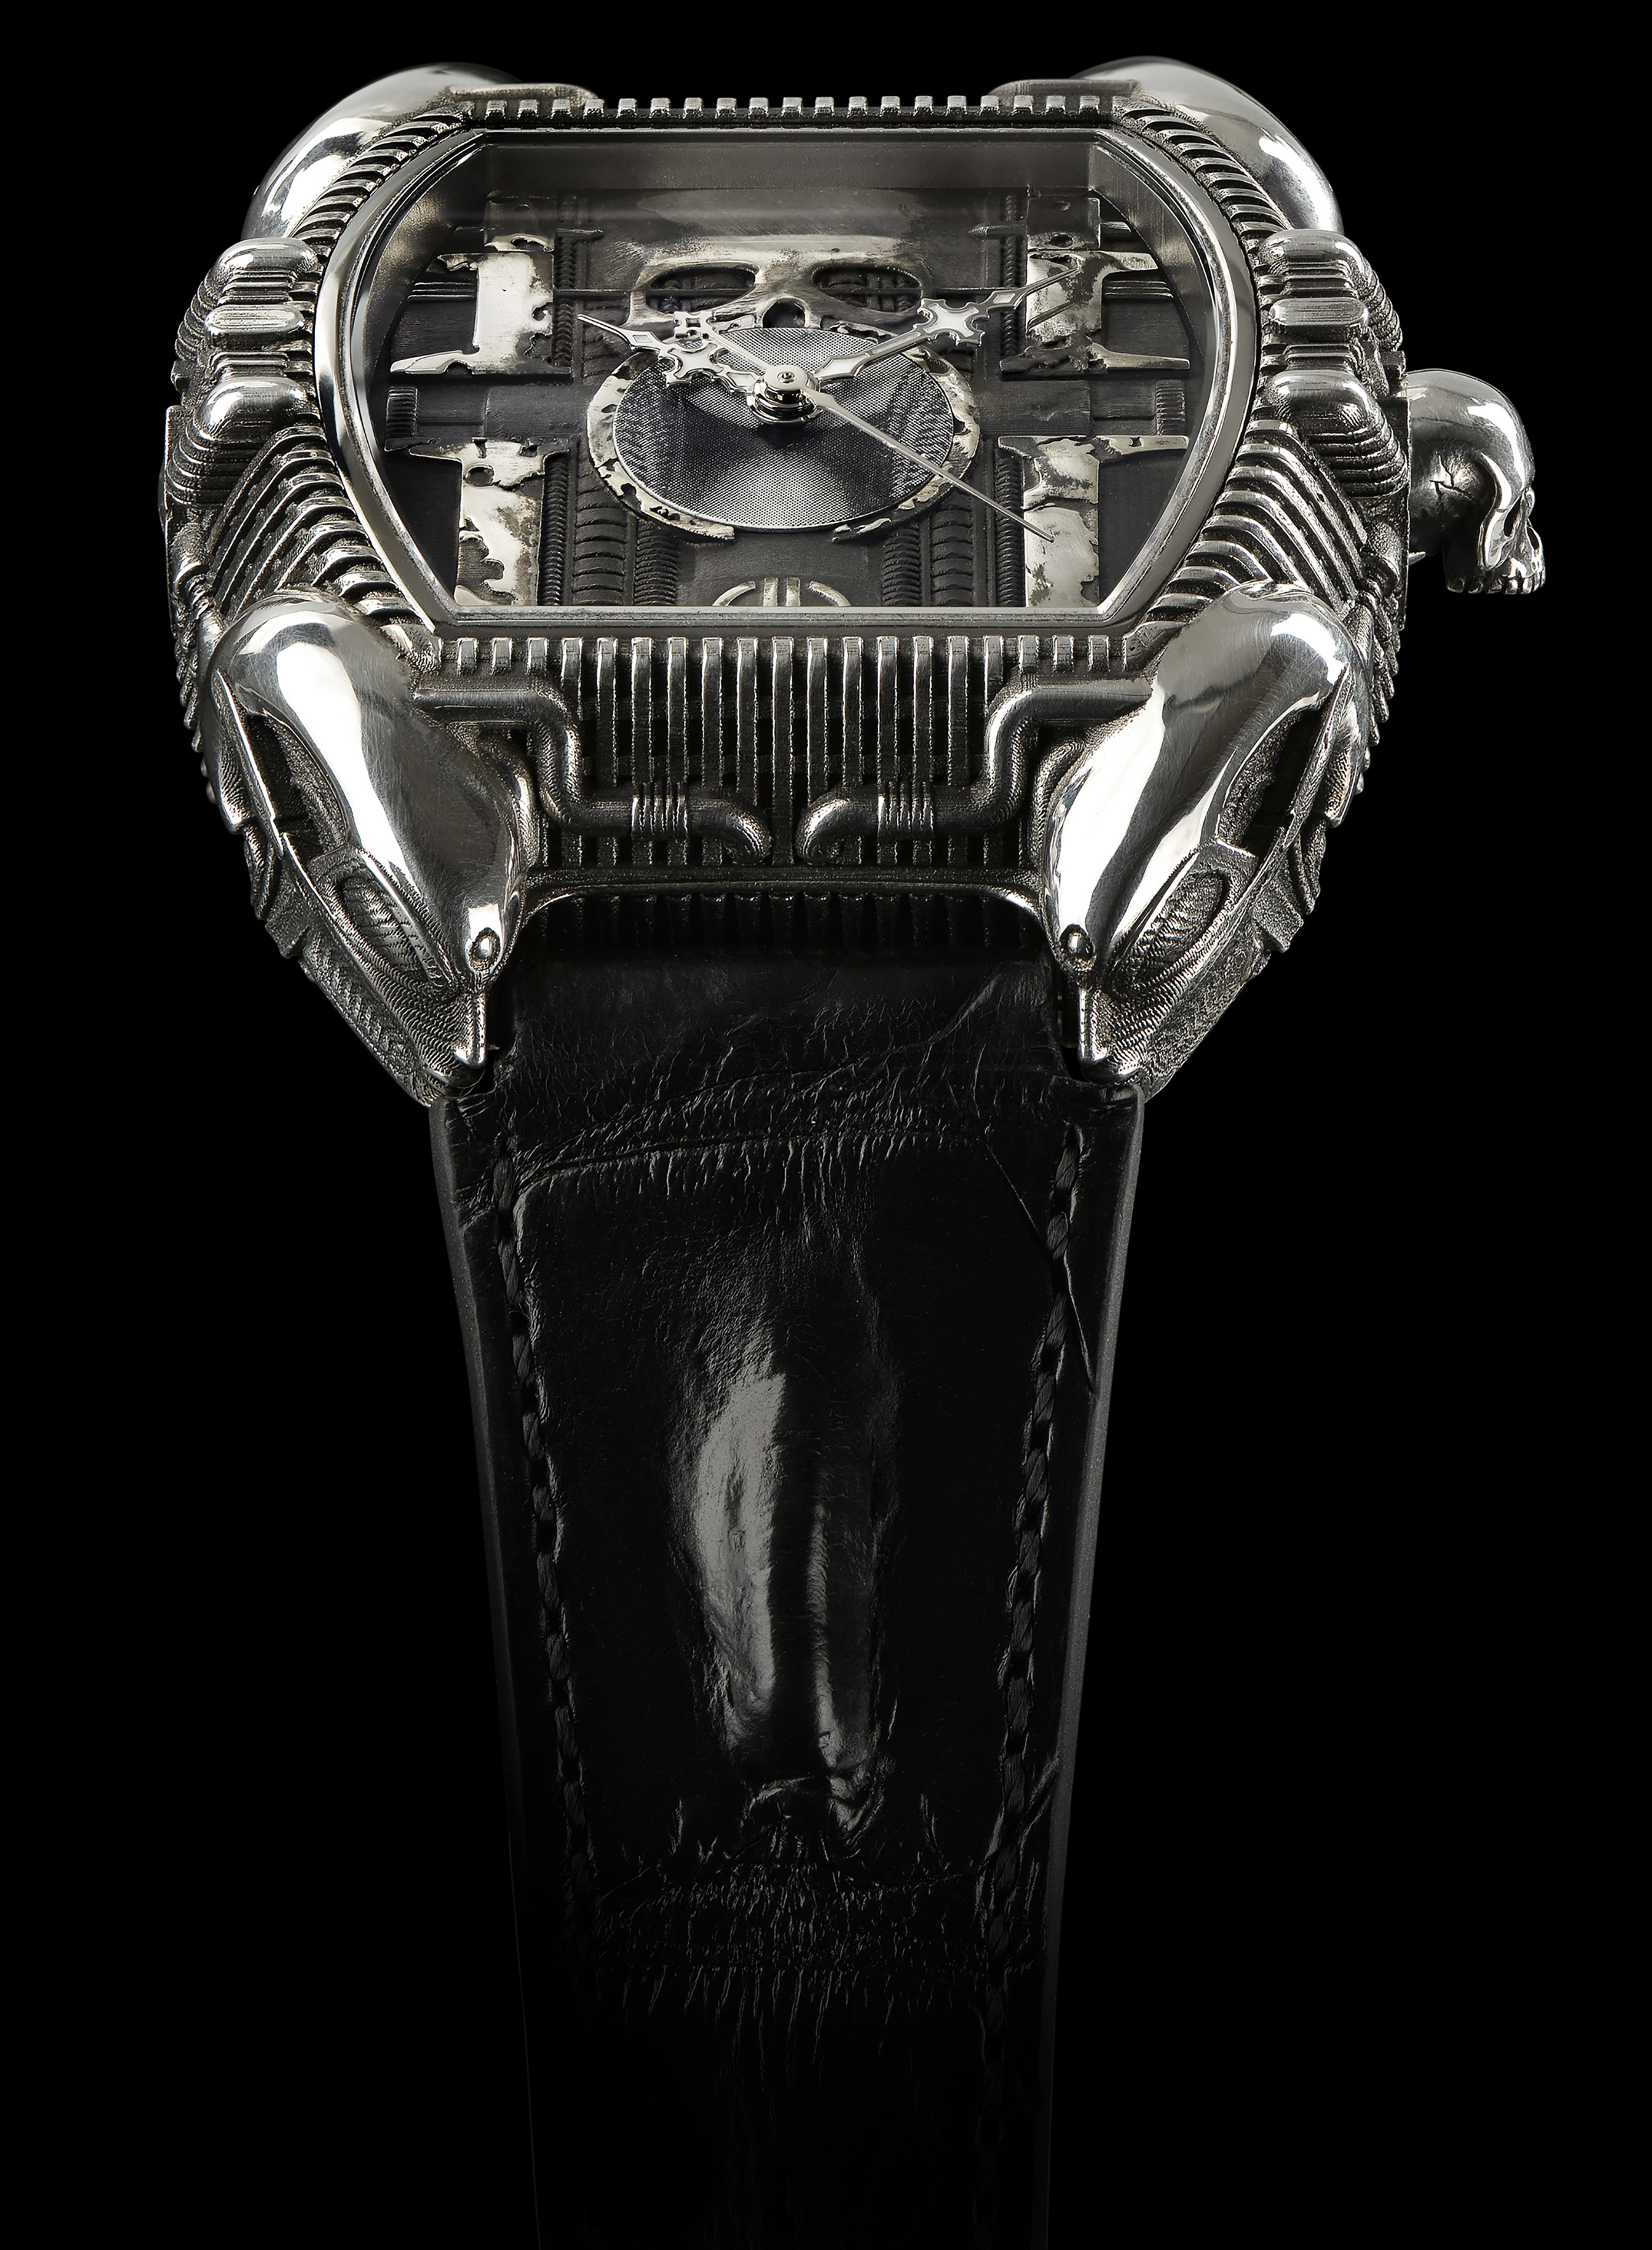 Agonium_In_Memorian_HR_Giger_HD_cobra copy